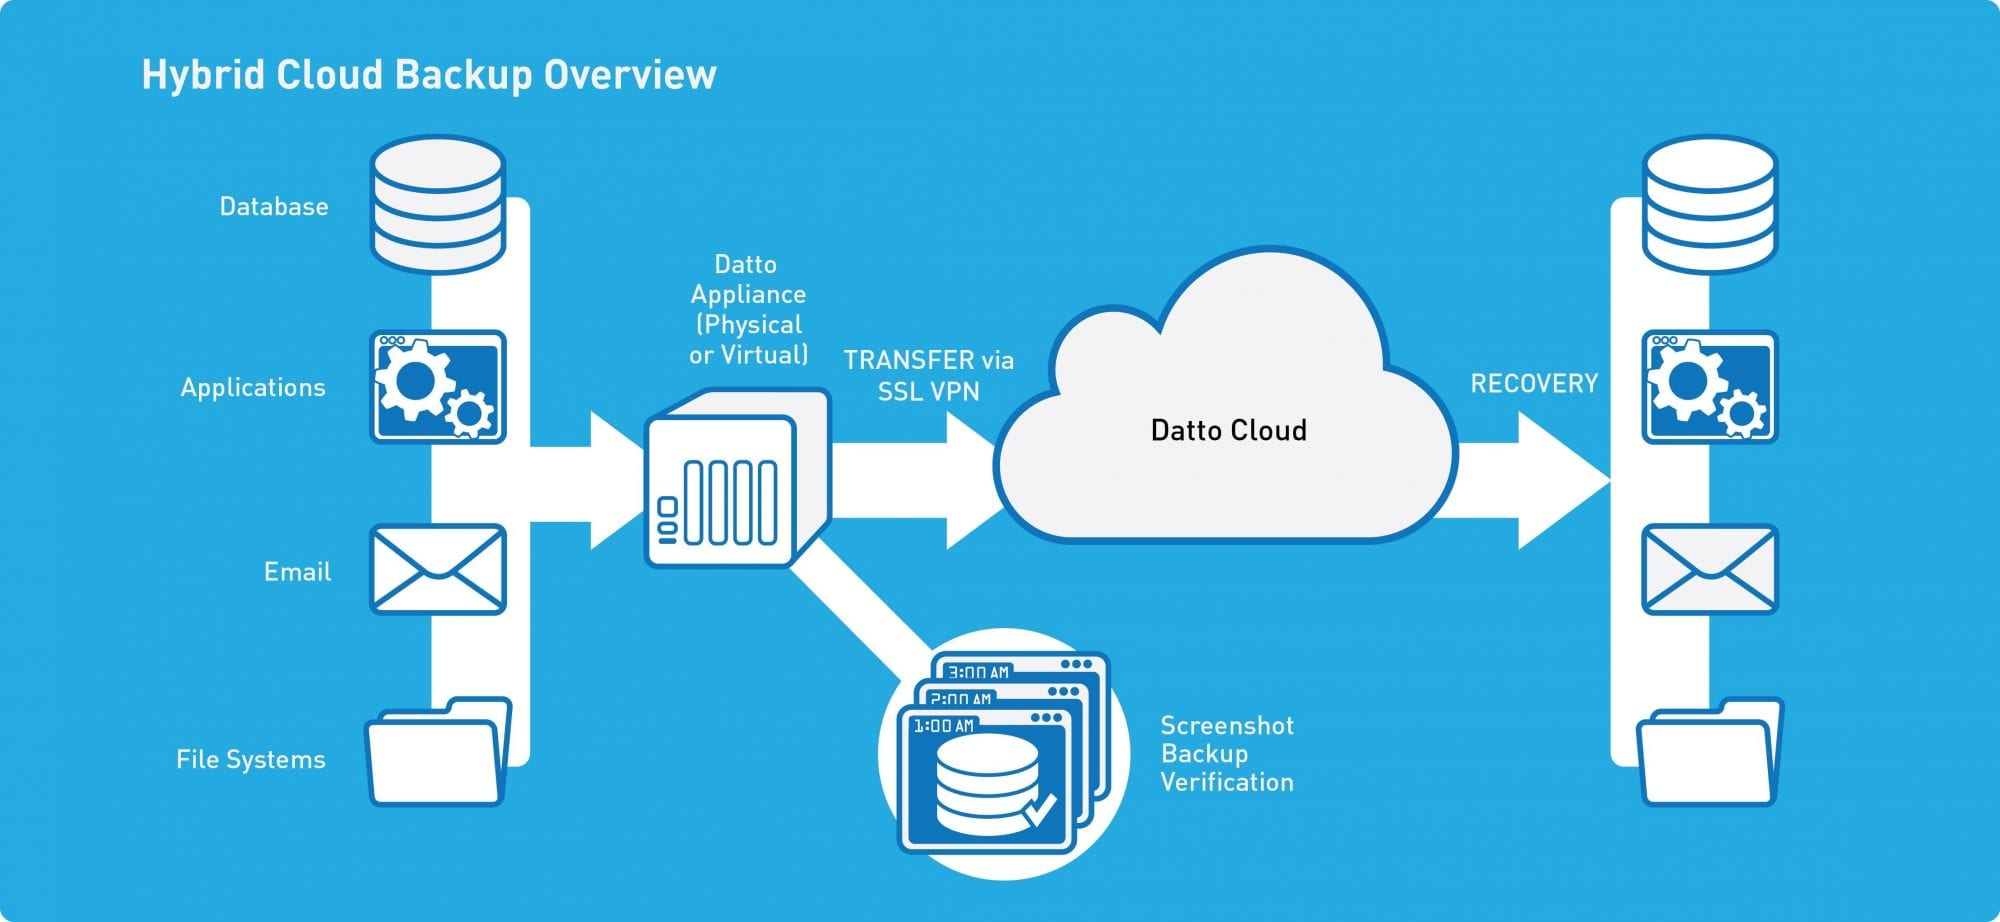 datto hyprid cloud backup overview